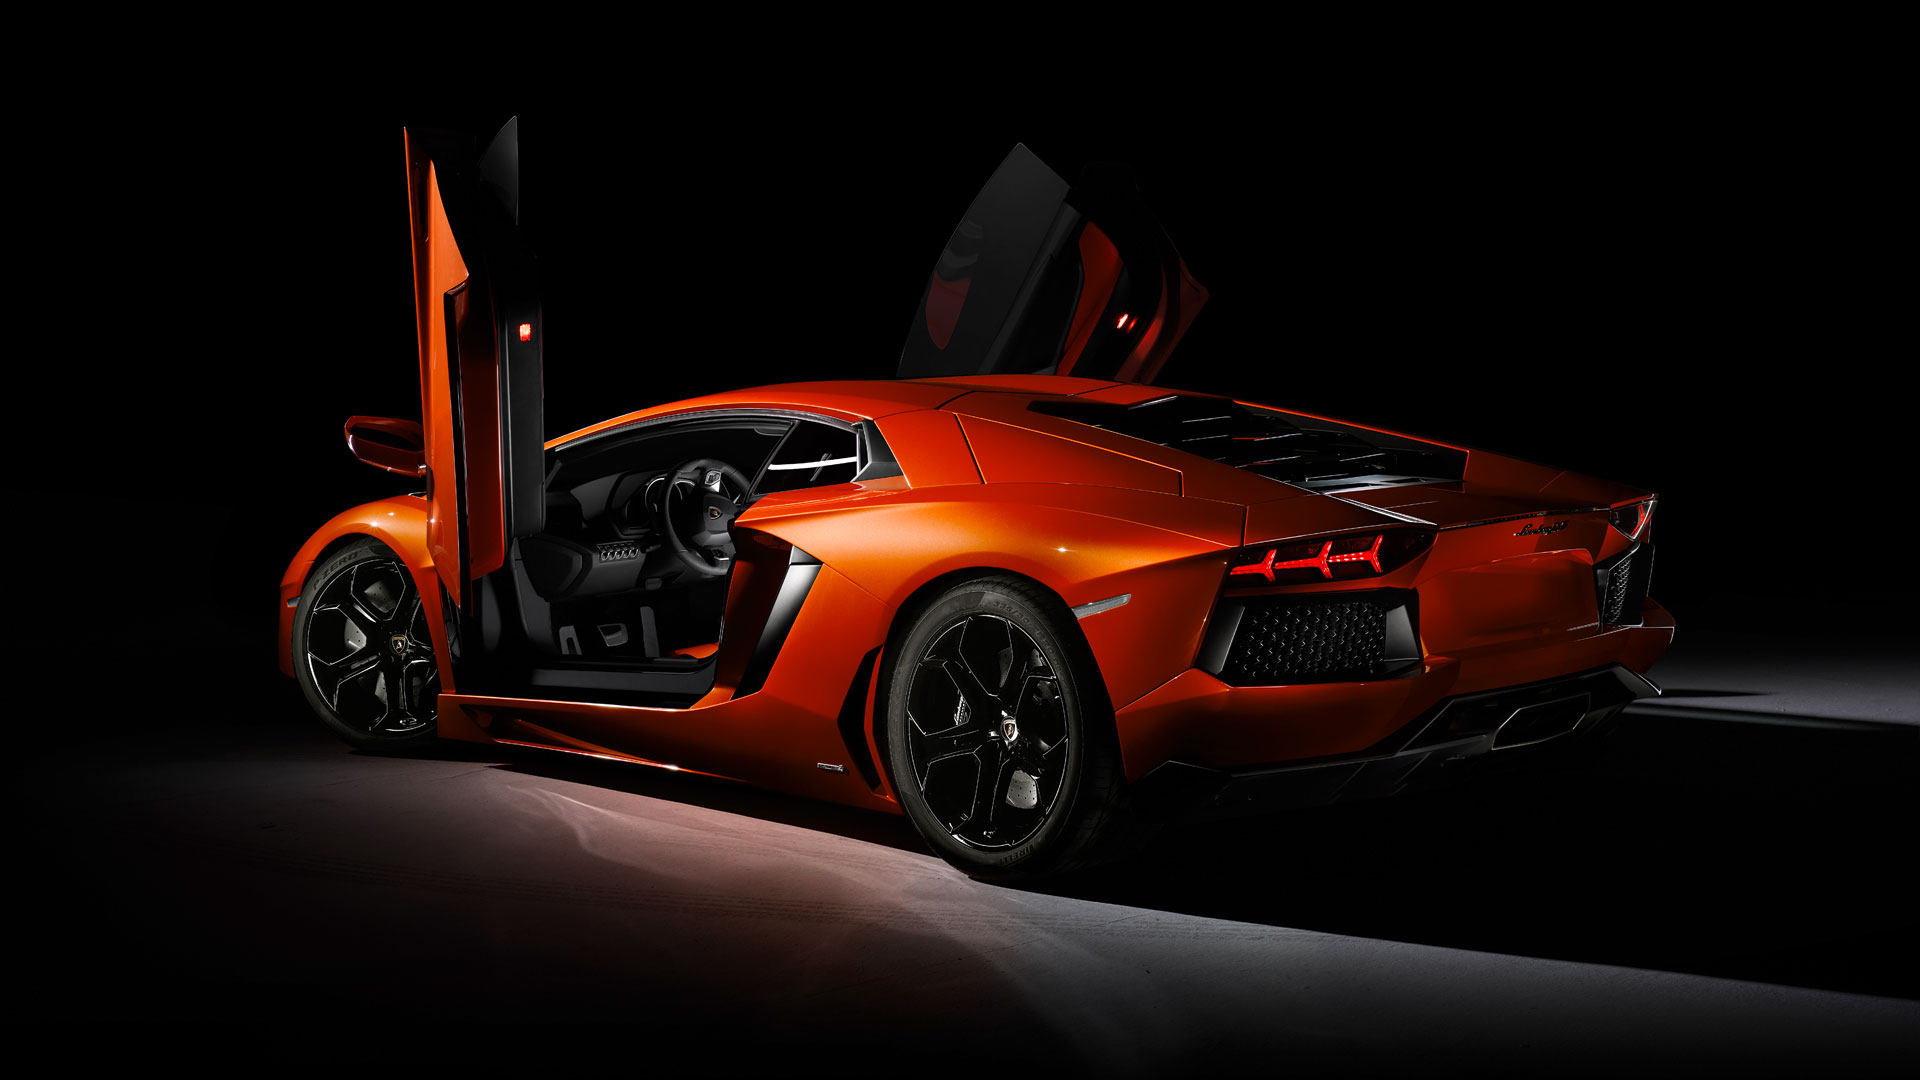 2014 lamborghini aventador lp 700 4 photos specs and review rs. Black Bedroom Furniture Sets. Home Design Ideas